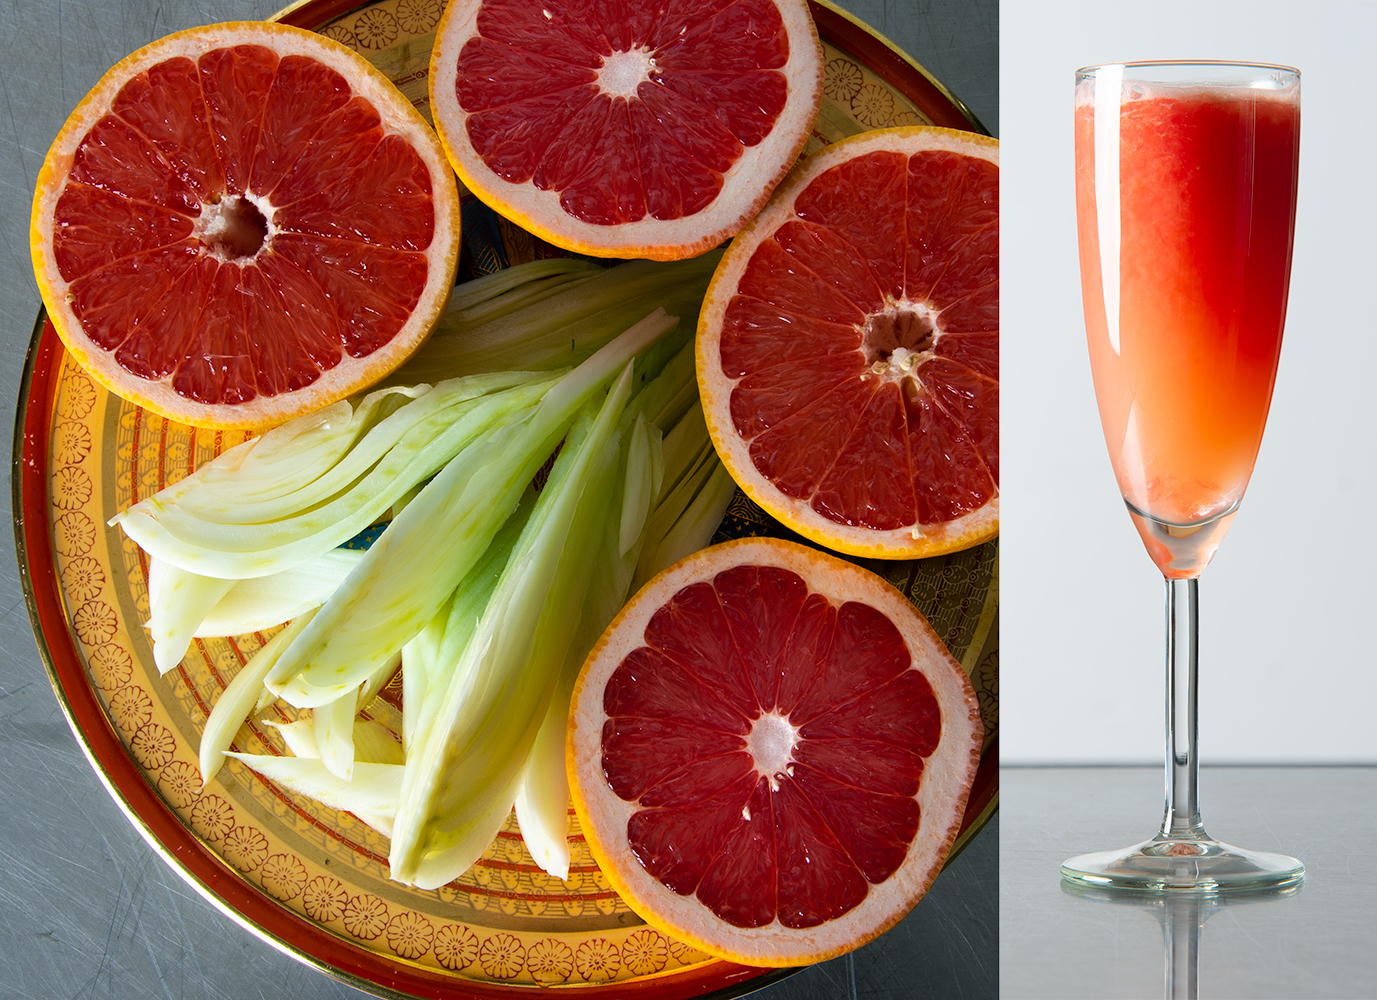 Red Grapefruit and Fennel are the two ingredients in El Presidente, the world's most luxurious juice.